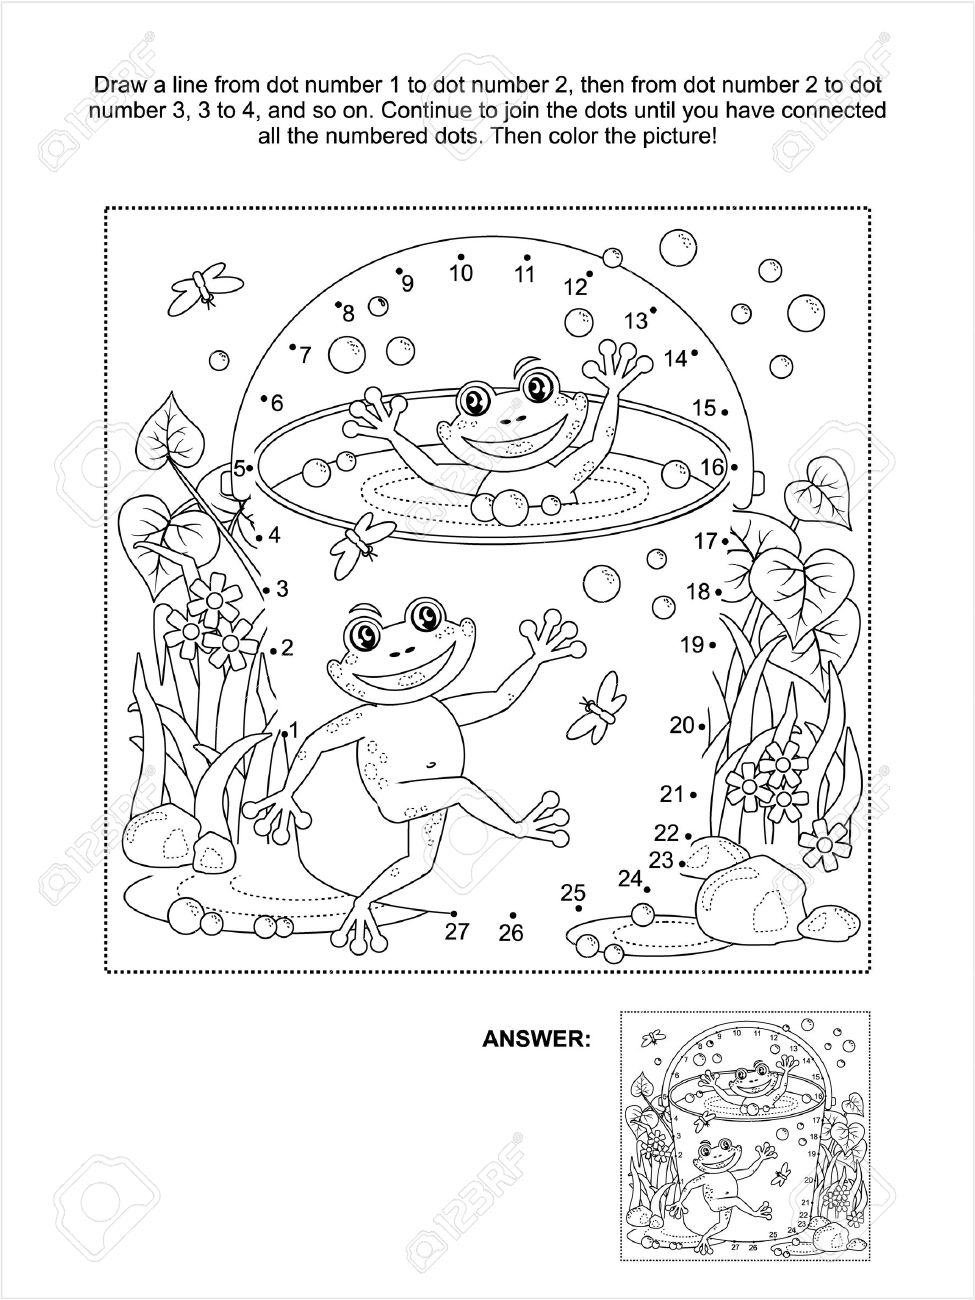 Summer dot to dot coloring pages - Connect The Dots Picture Puzzle And Coloring Page Spring Or Summer Joy Themed With